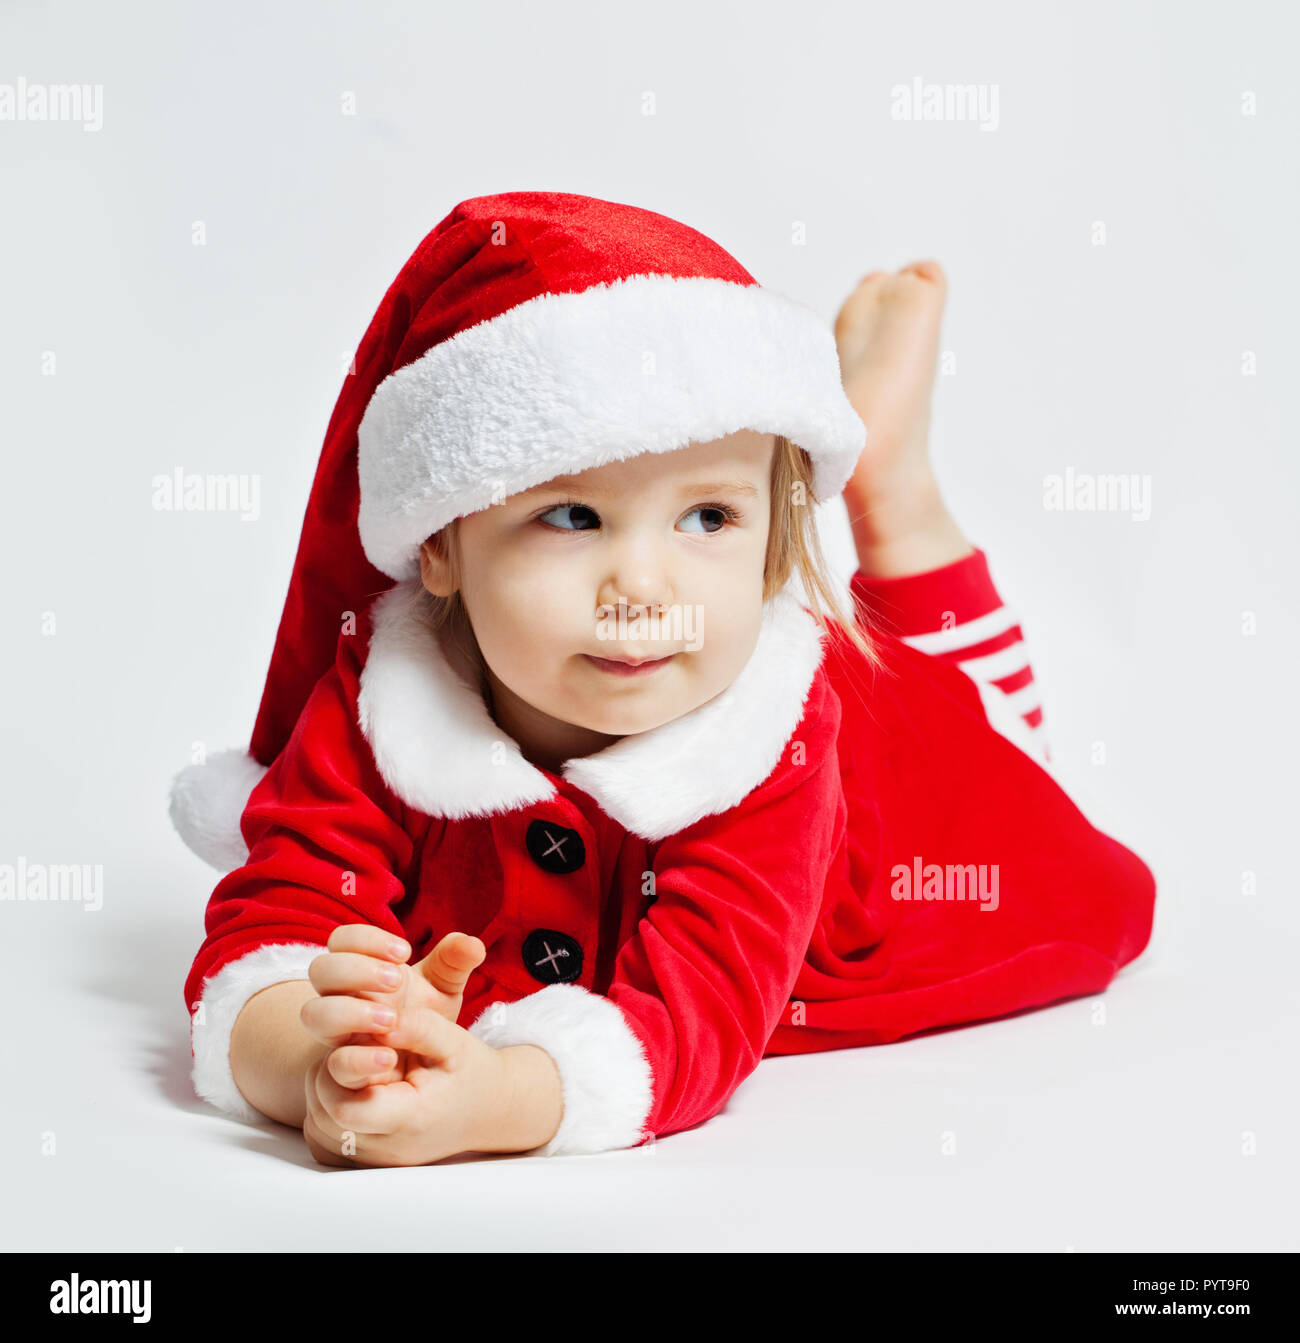 0d835c70f Portrait of cute baby in santa hat on white background Stock Photo ...